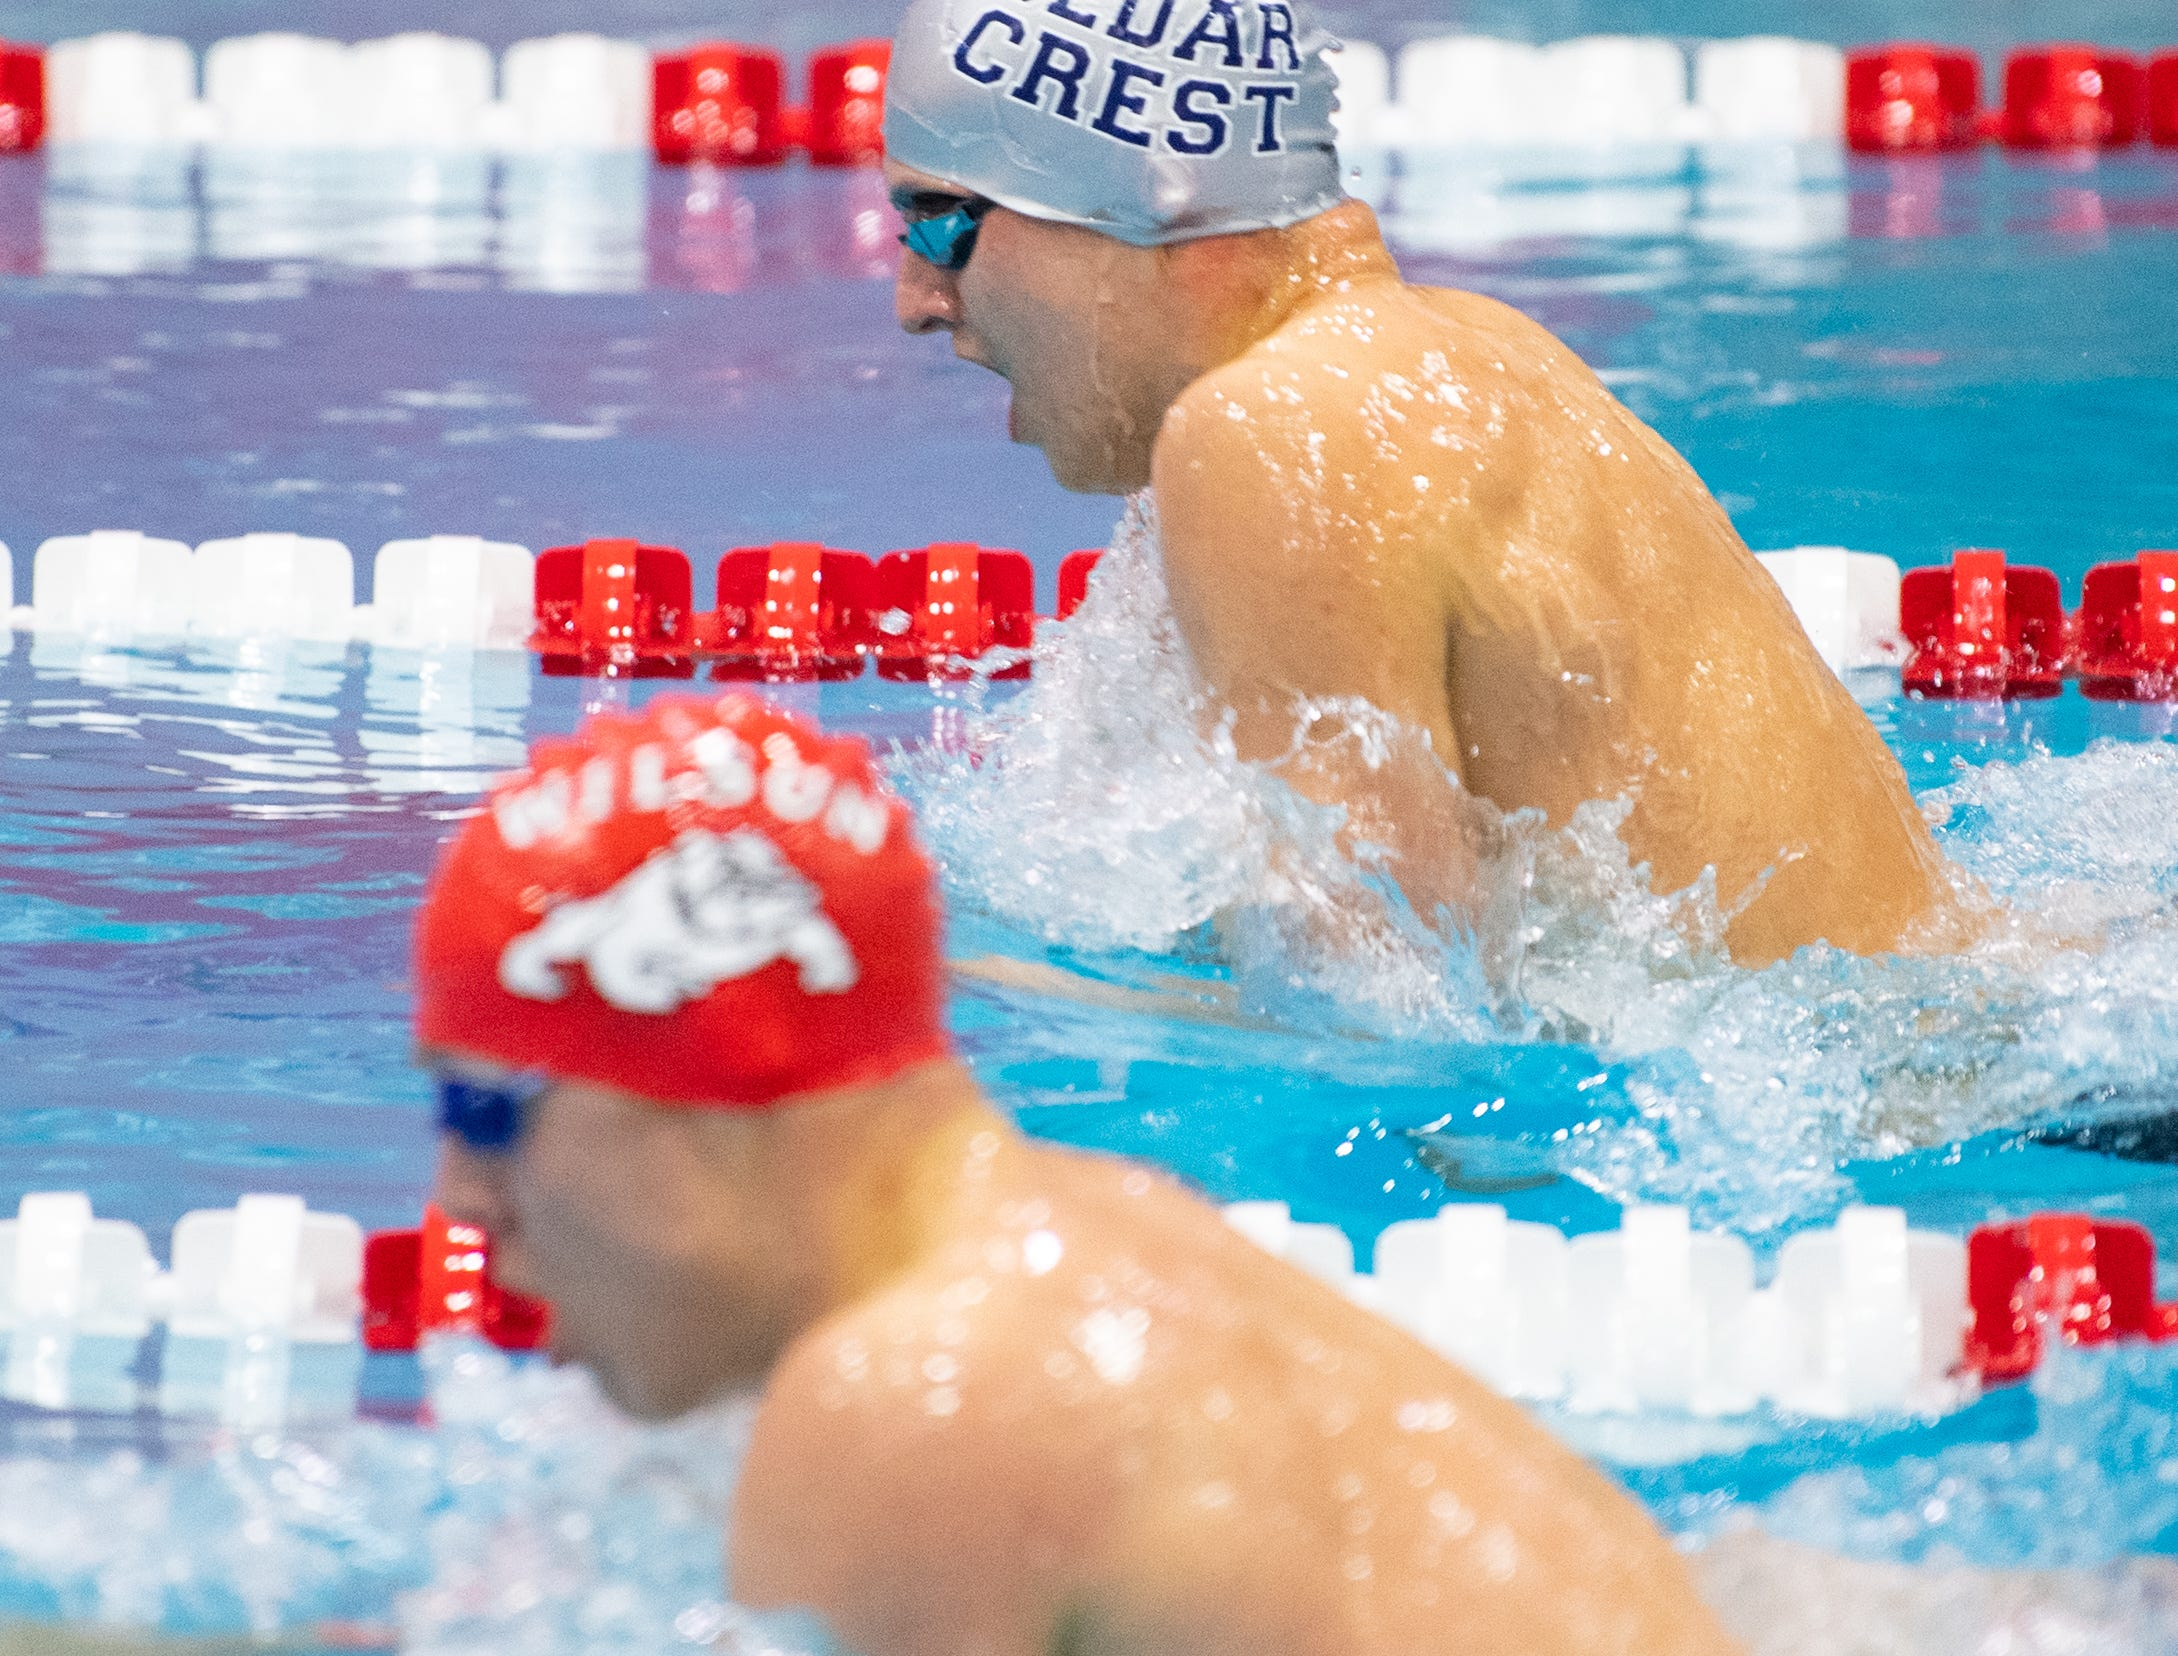 Cameron Hain of Cedar Crest competes in the Boys 200 Yard IM during the PIAA District 3 Boys AAA Championship, March 1, 2019 at Cumberland Valley High School.